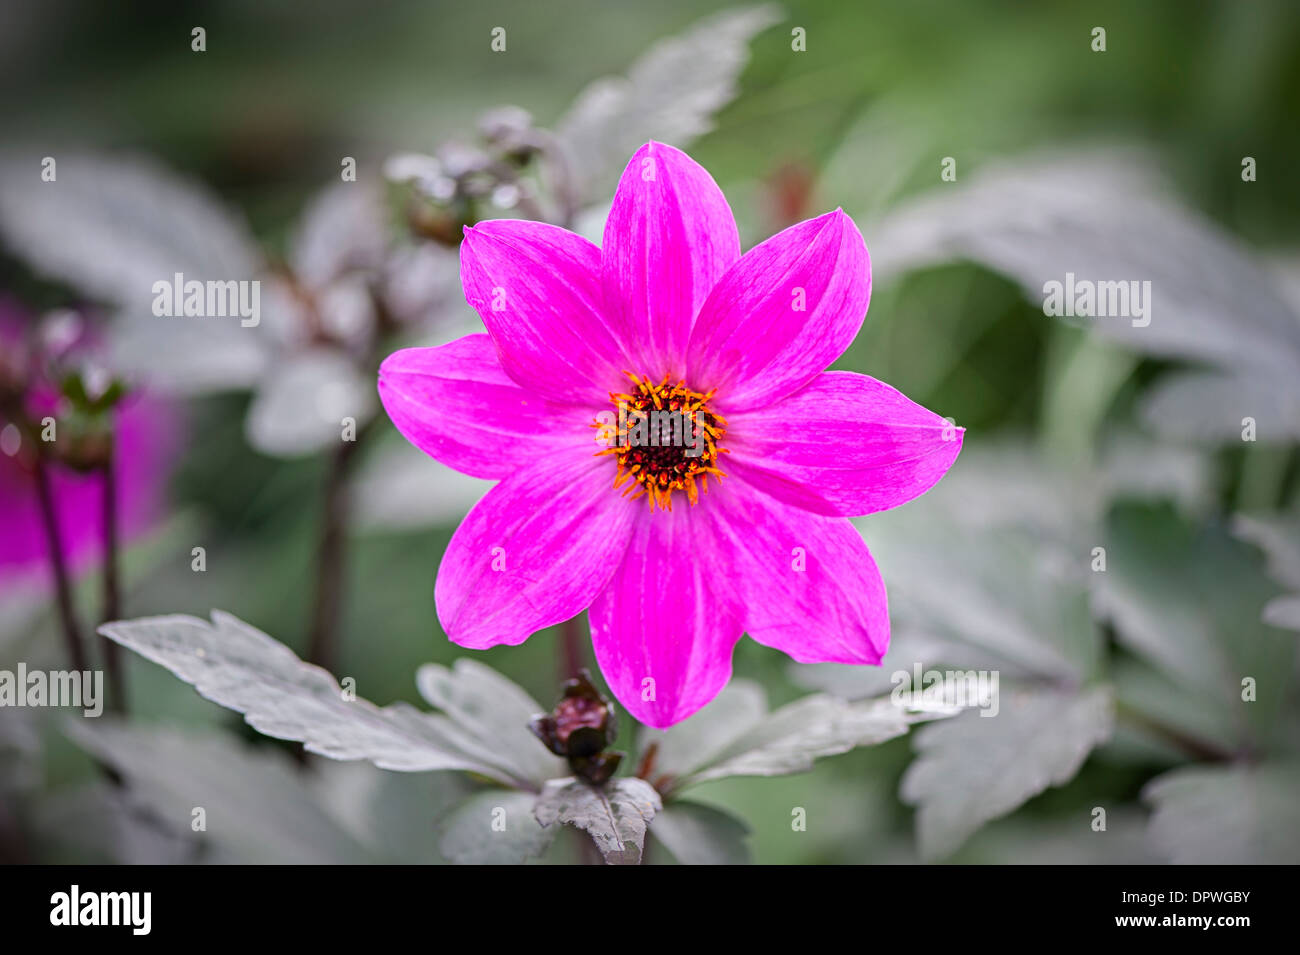 Close-up image of a single pink Dahlia 'Magenta Star' flower - Stock Image